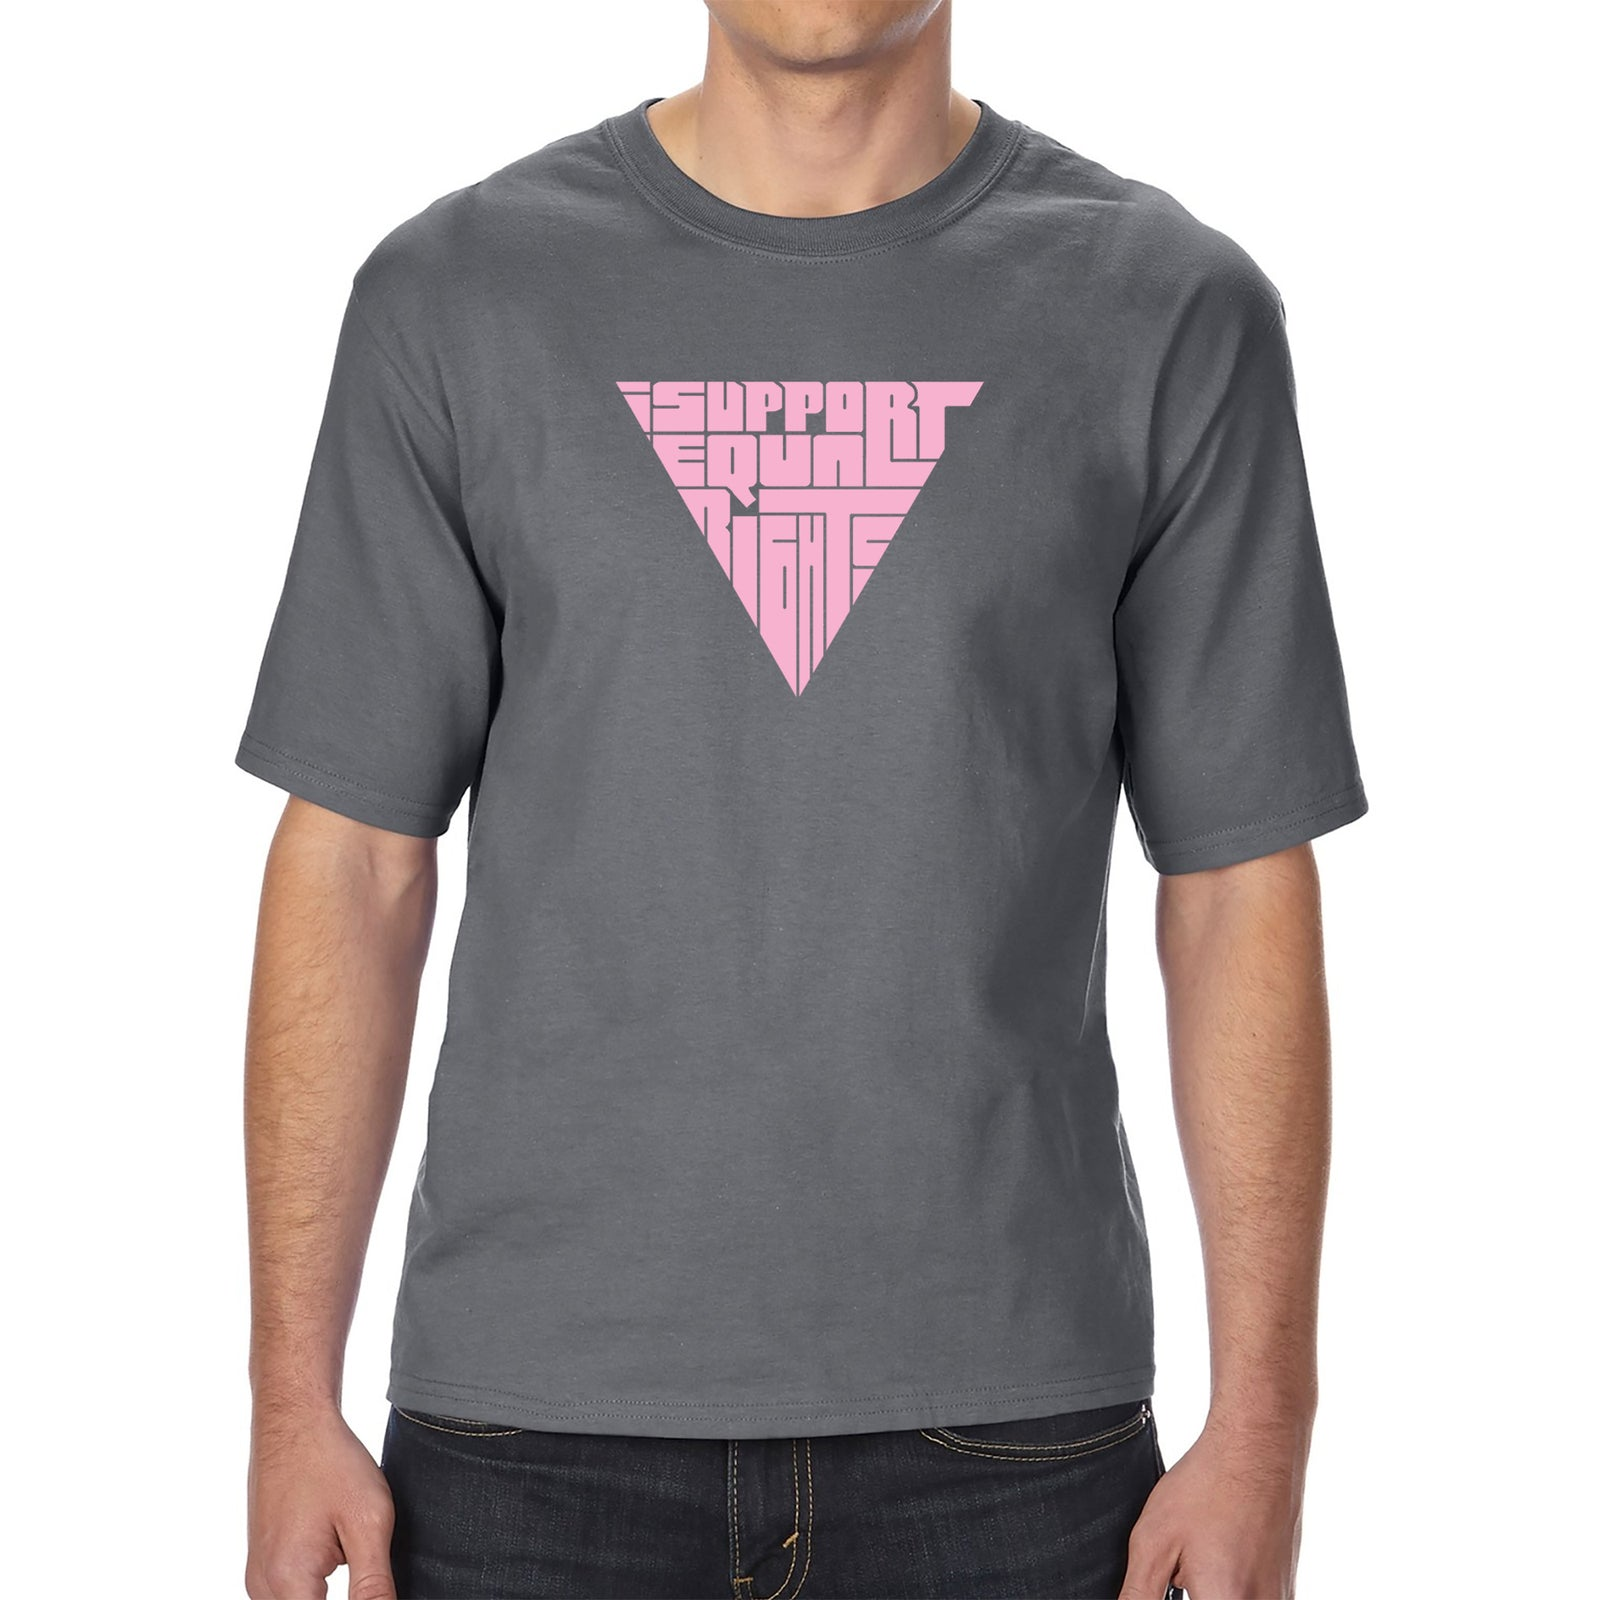 Men's Tall and Long Word Art T-shirt - I SUPPORT EQUAL RIGHTS